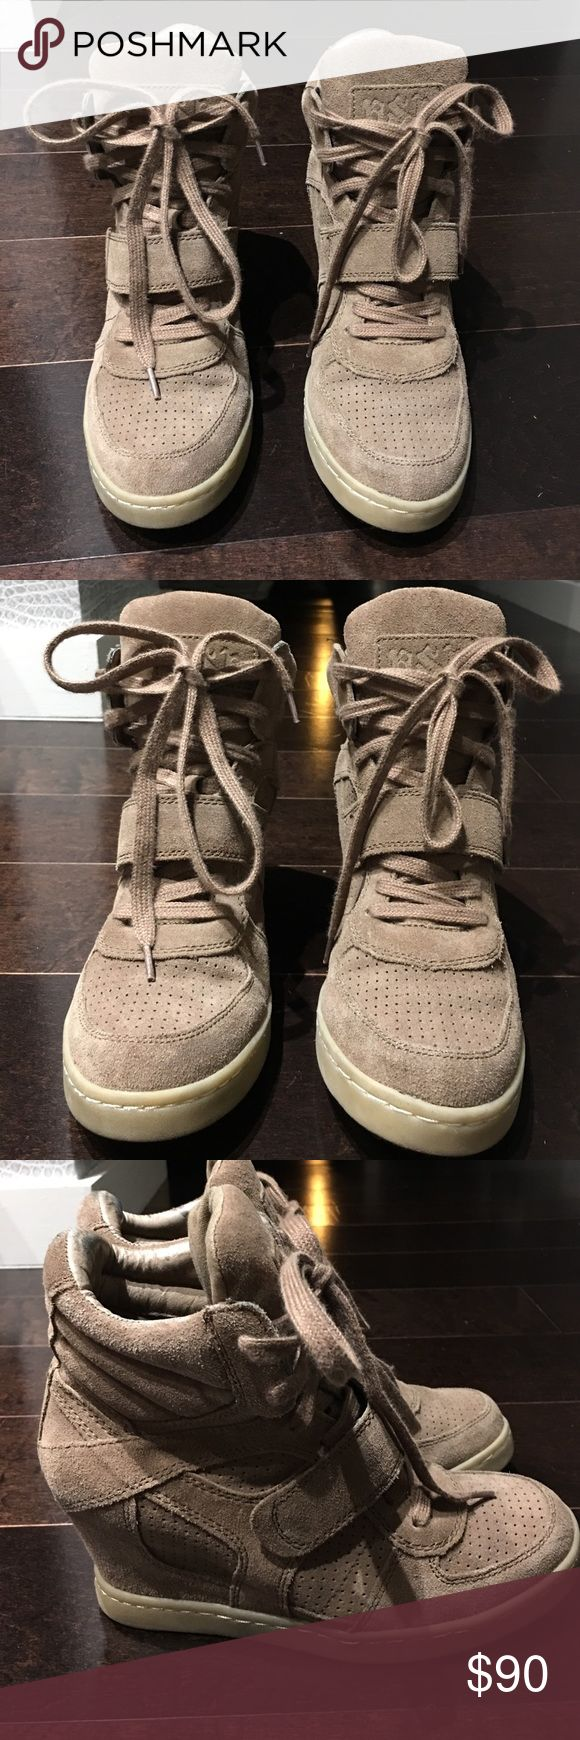 Ash Women's Brown Bowie Suede Wedge Sneaker, 39 Authentic Ash Women's Brown/Dark Beige Bowie Suede Wedge Sneaker. Size 39. Excellent, like new condition. Literally worn twice. Retail $325! Comes with original dust bag. Ash Shoes Wedges